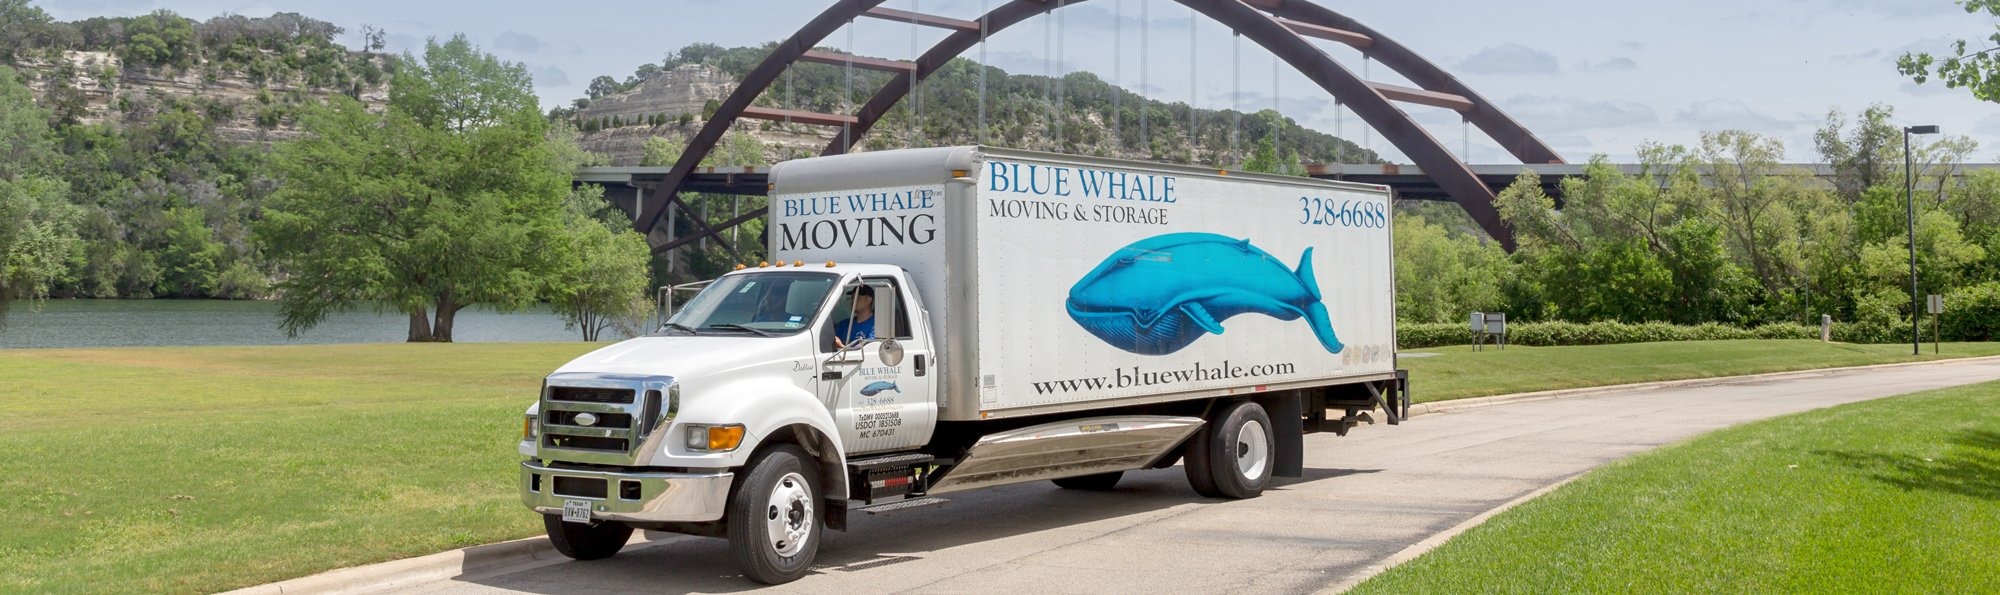 Blue Whale Moving Company truck in Austin, TX